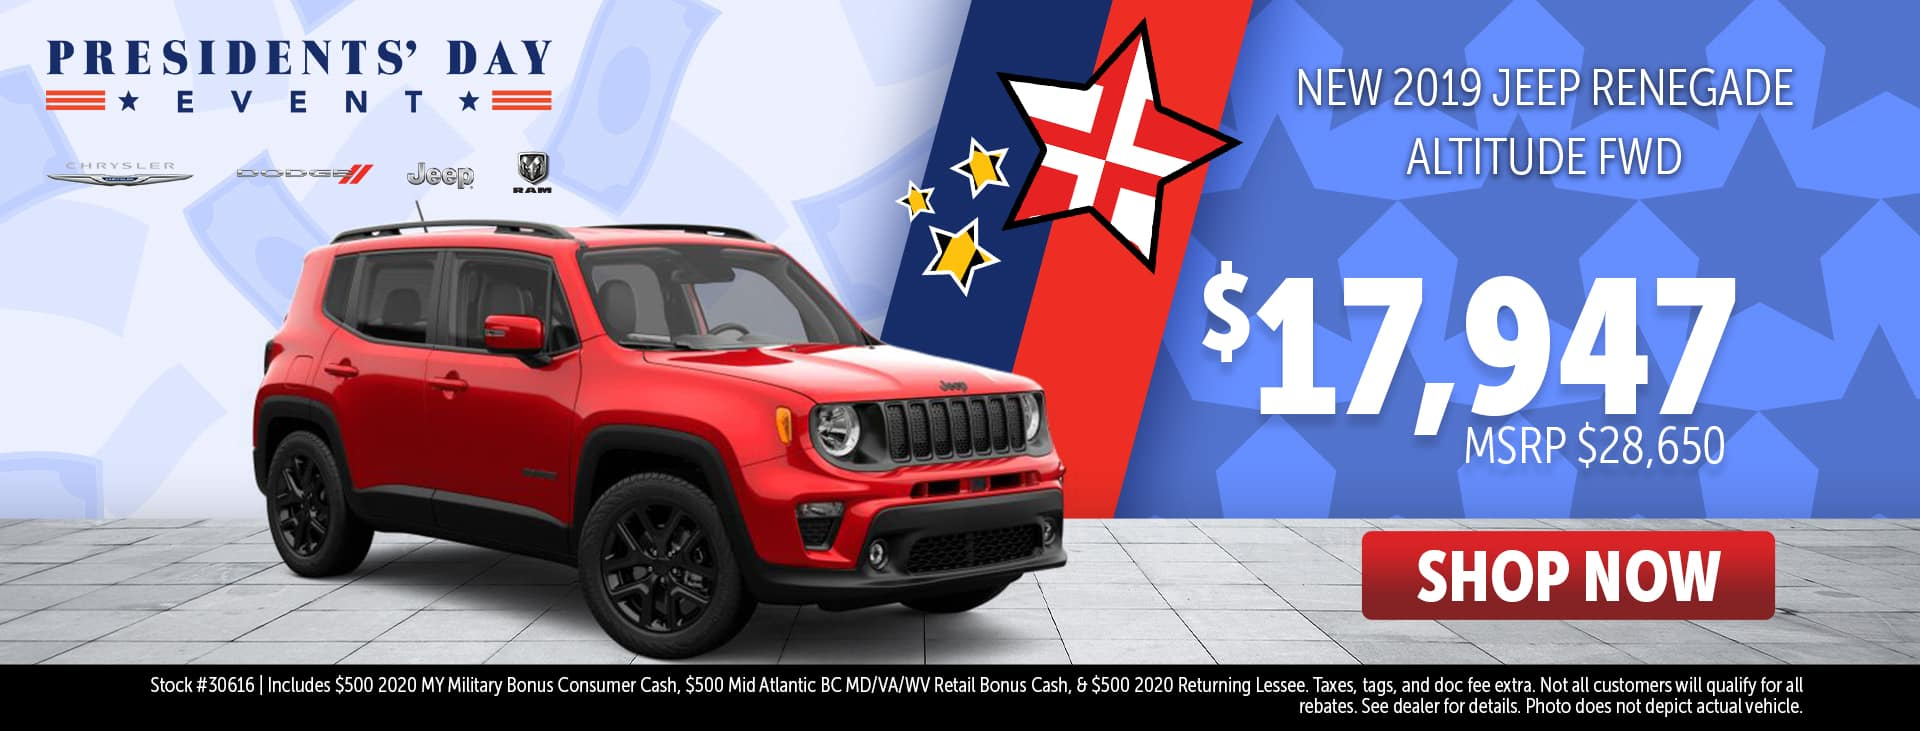 Presidents' Day Event Price for 2019 Jeep Renegade